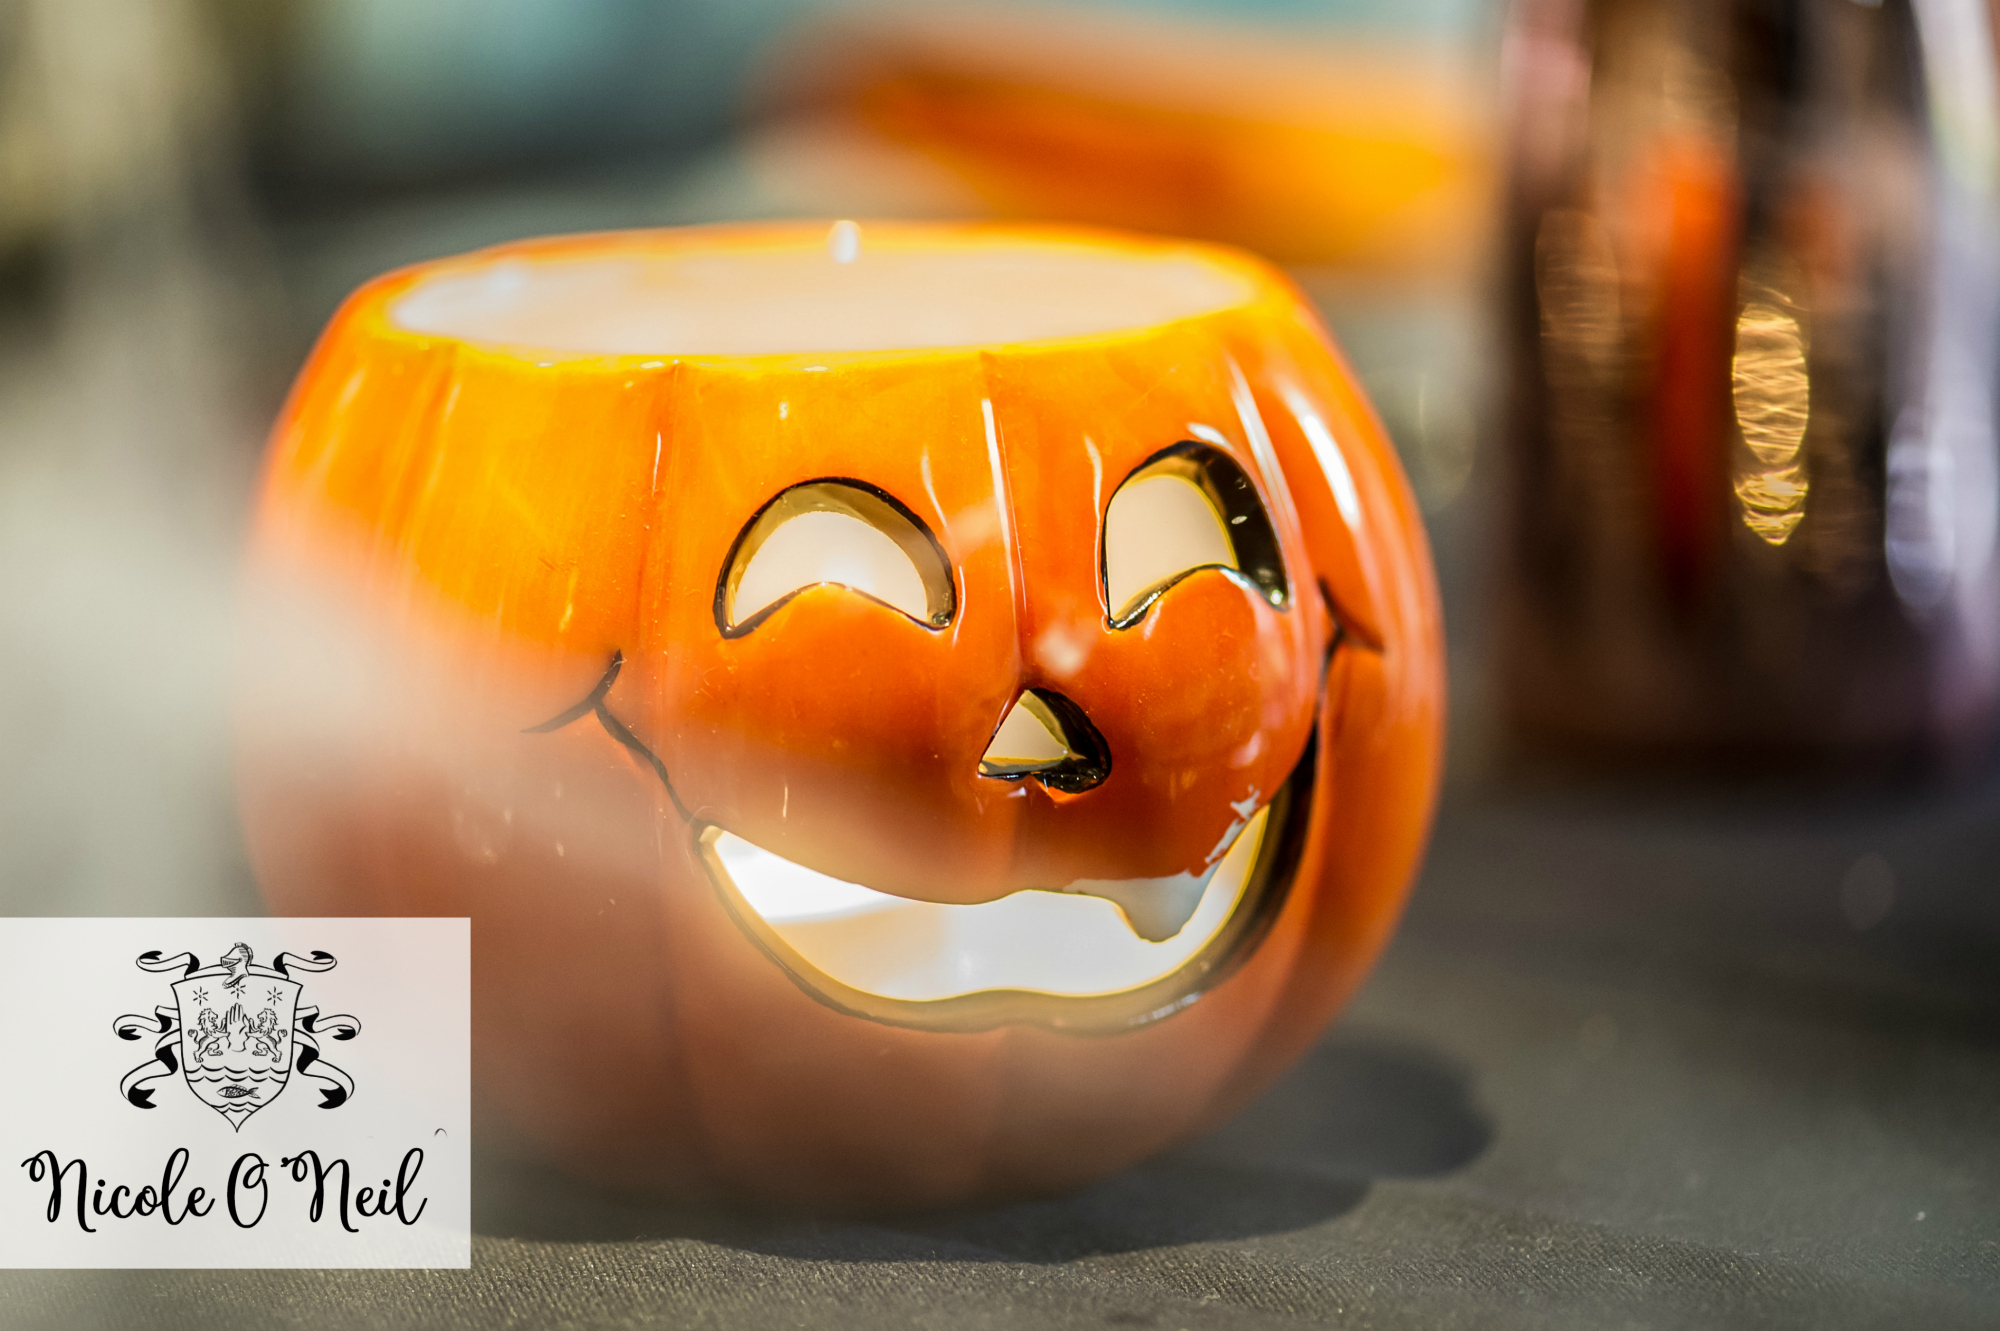 Halloween Party Decoration Ideas and Halloween Table Setting Inspiration - Jack O Lantern Candles .jpg